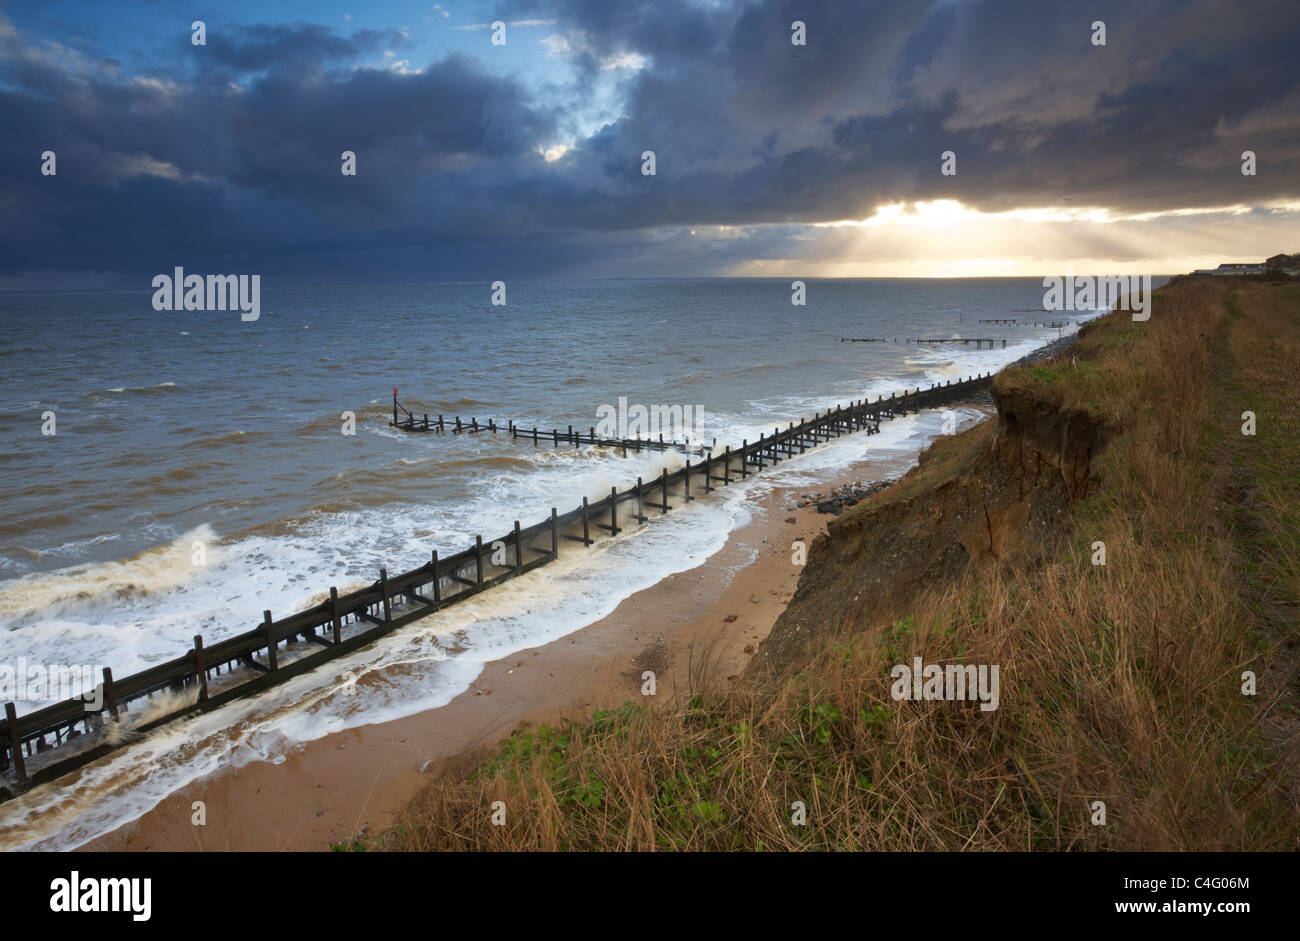 Stormy conditions at Corton on the Suffolk Coast - Stock Image